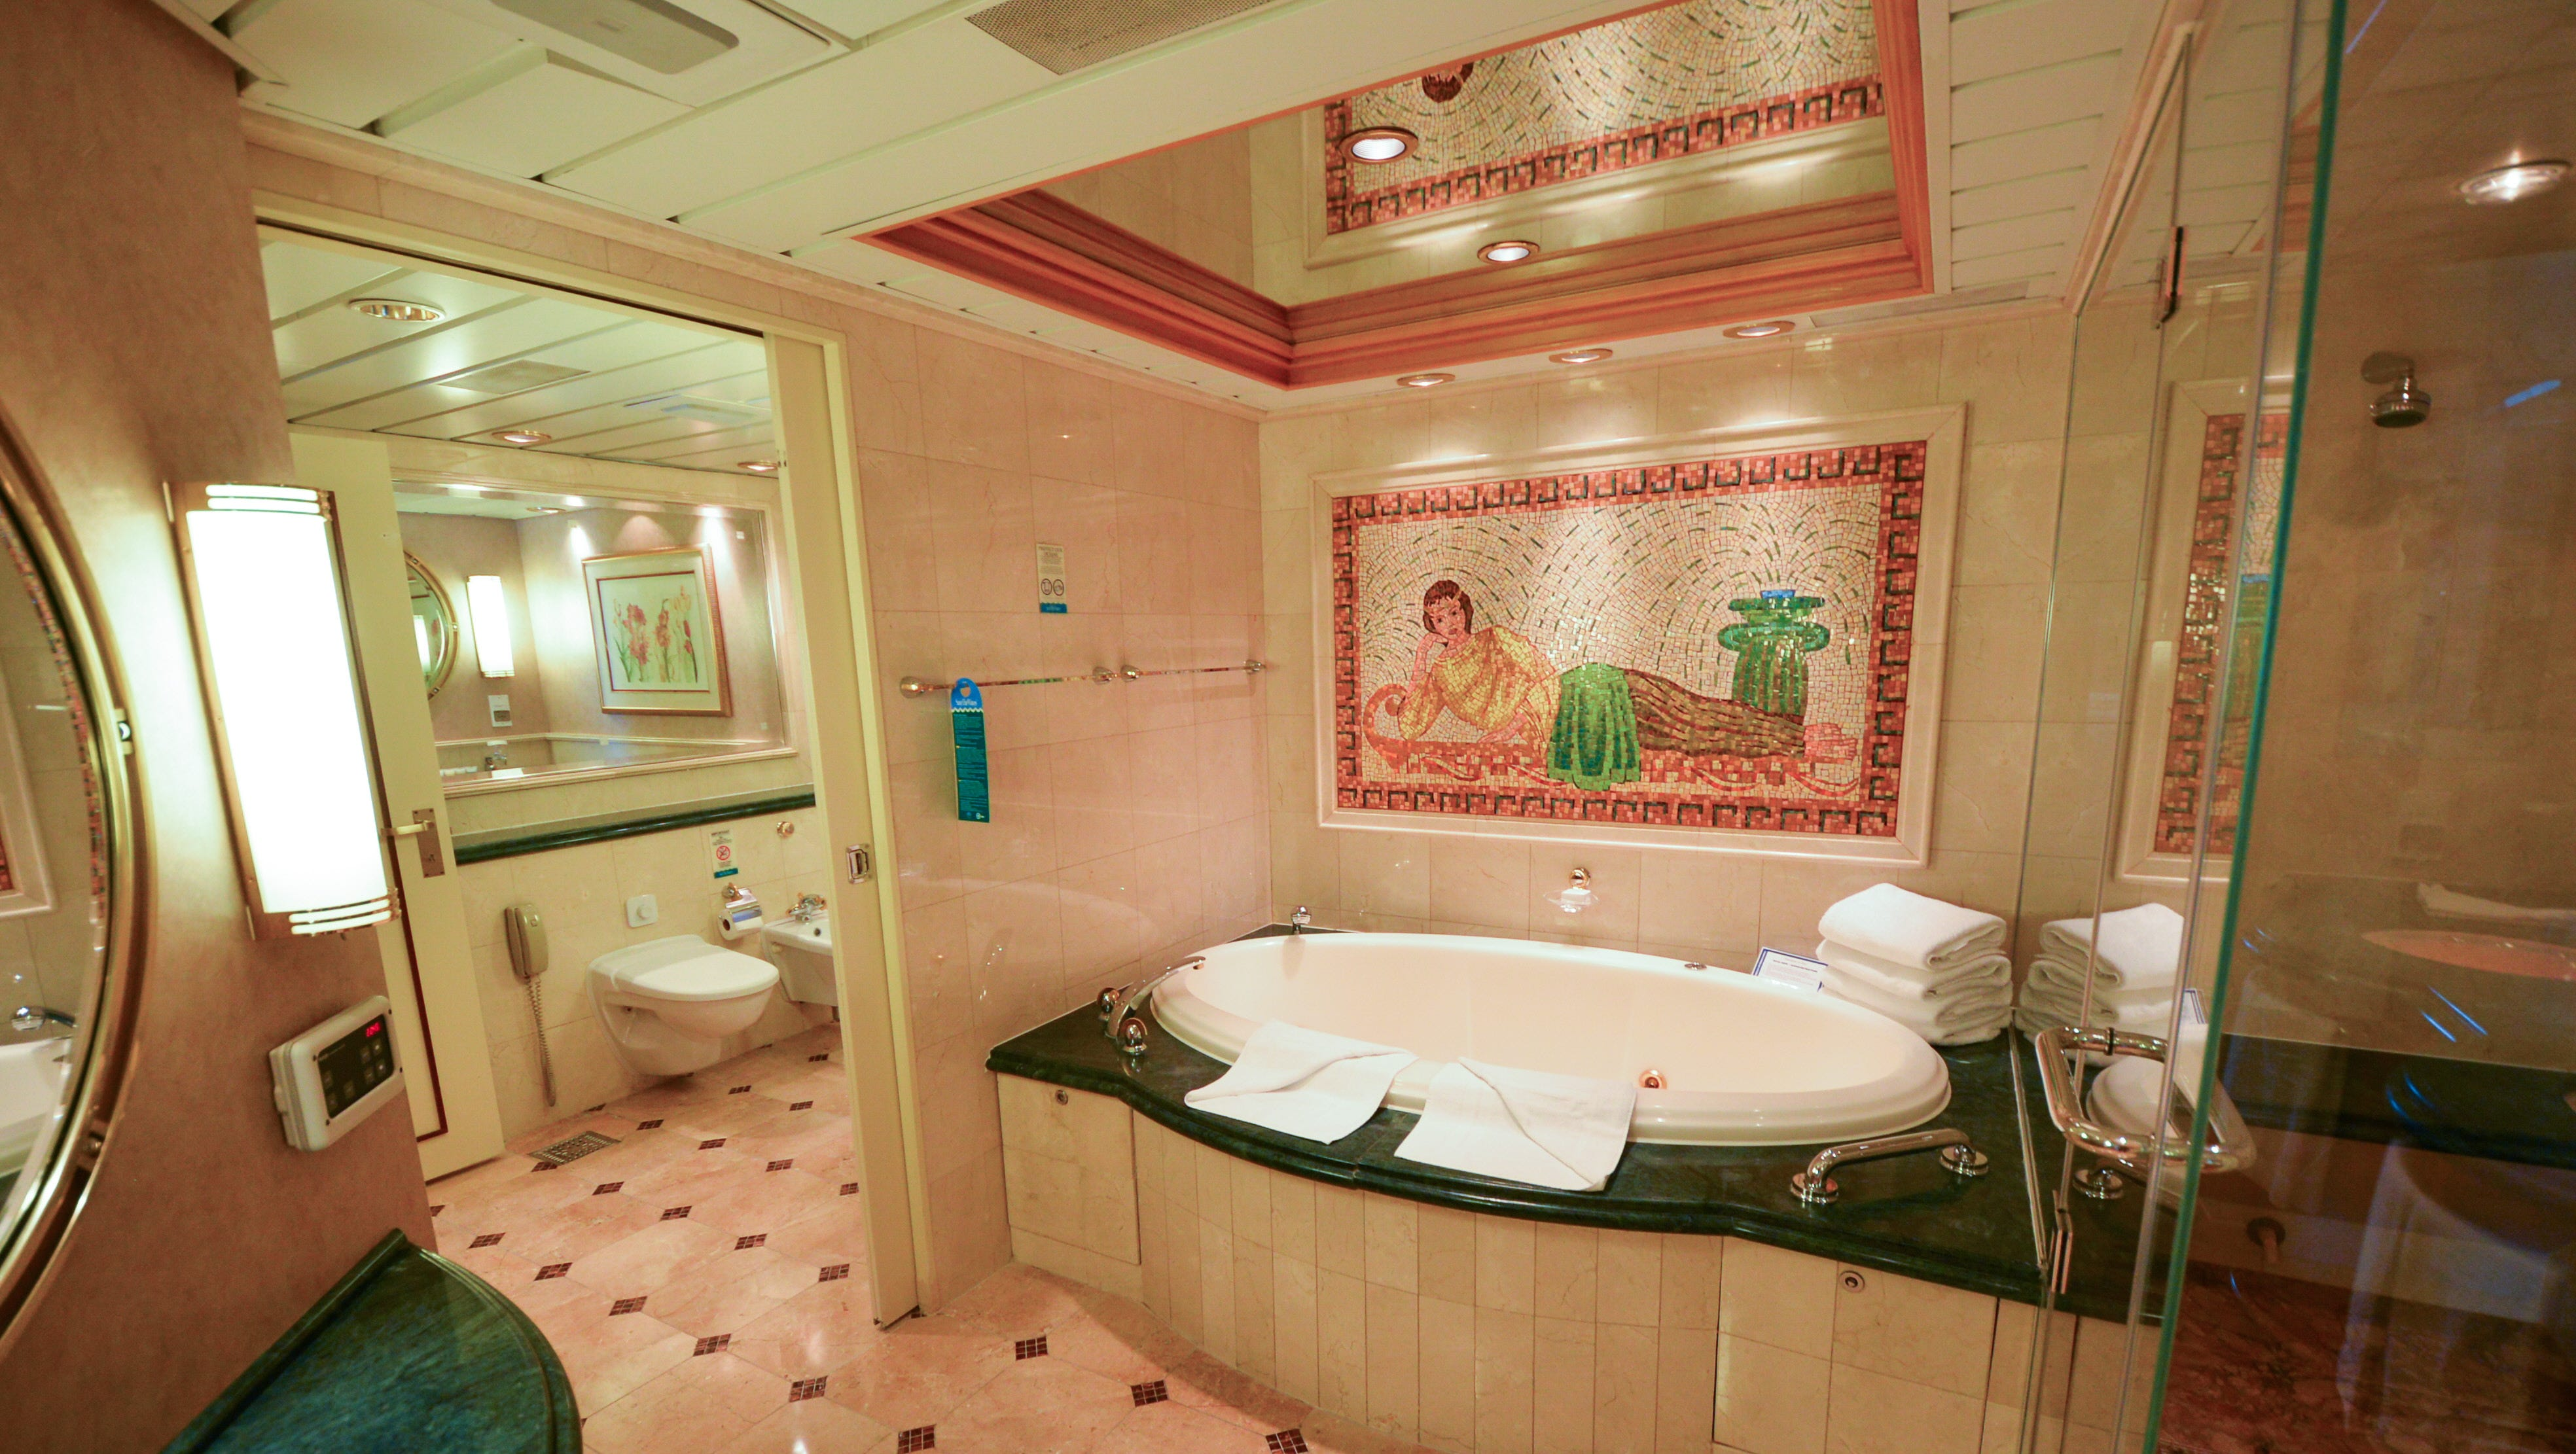 The master bathroom has a whirlpool tub and separate walk-in shower.